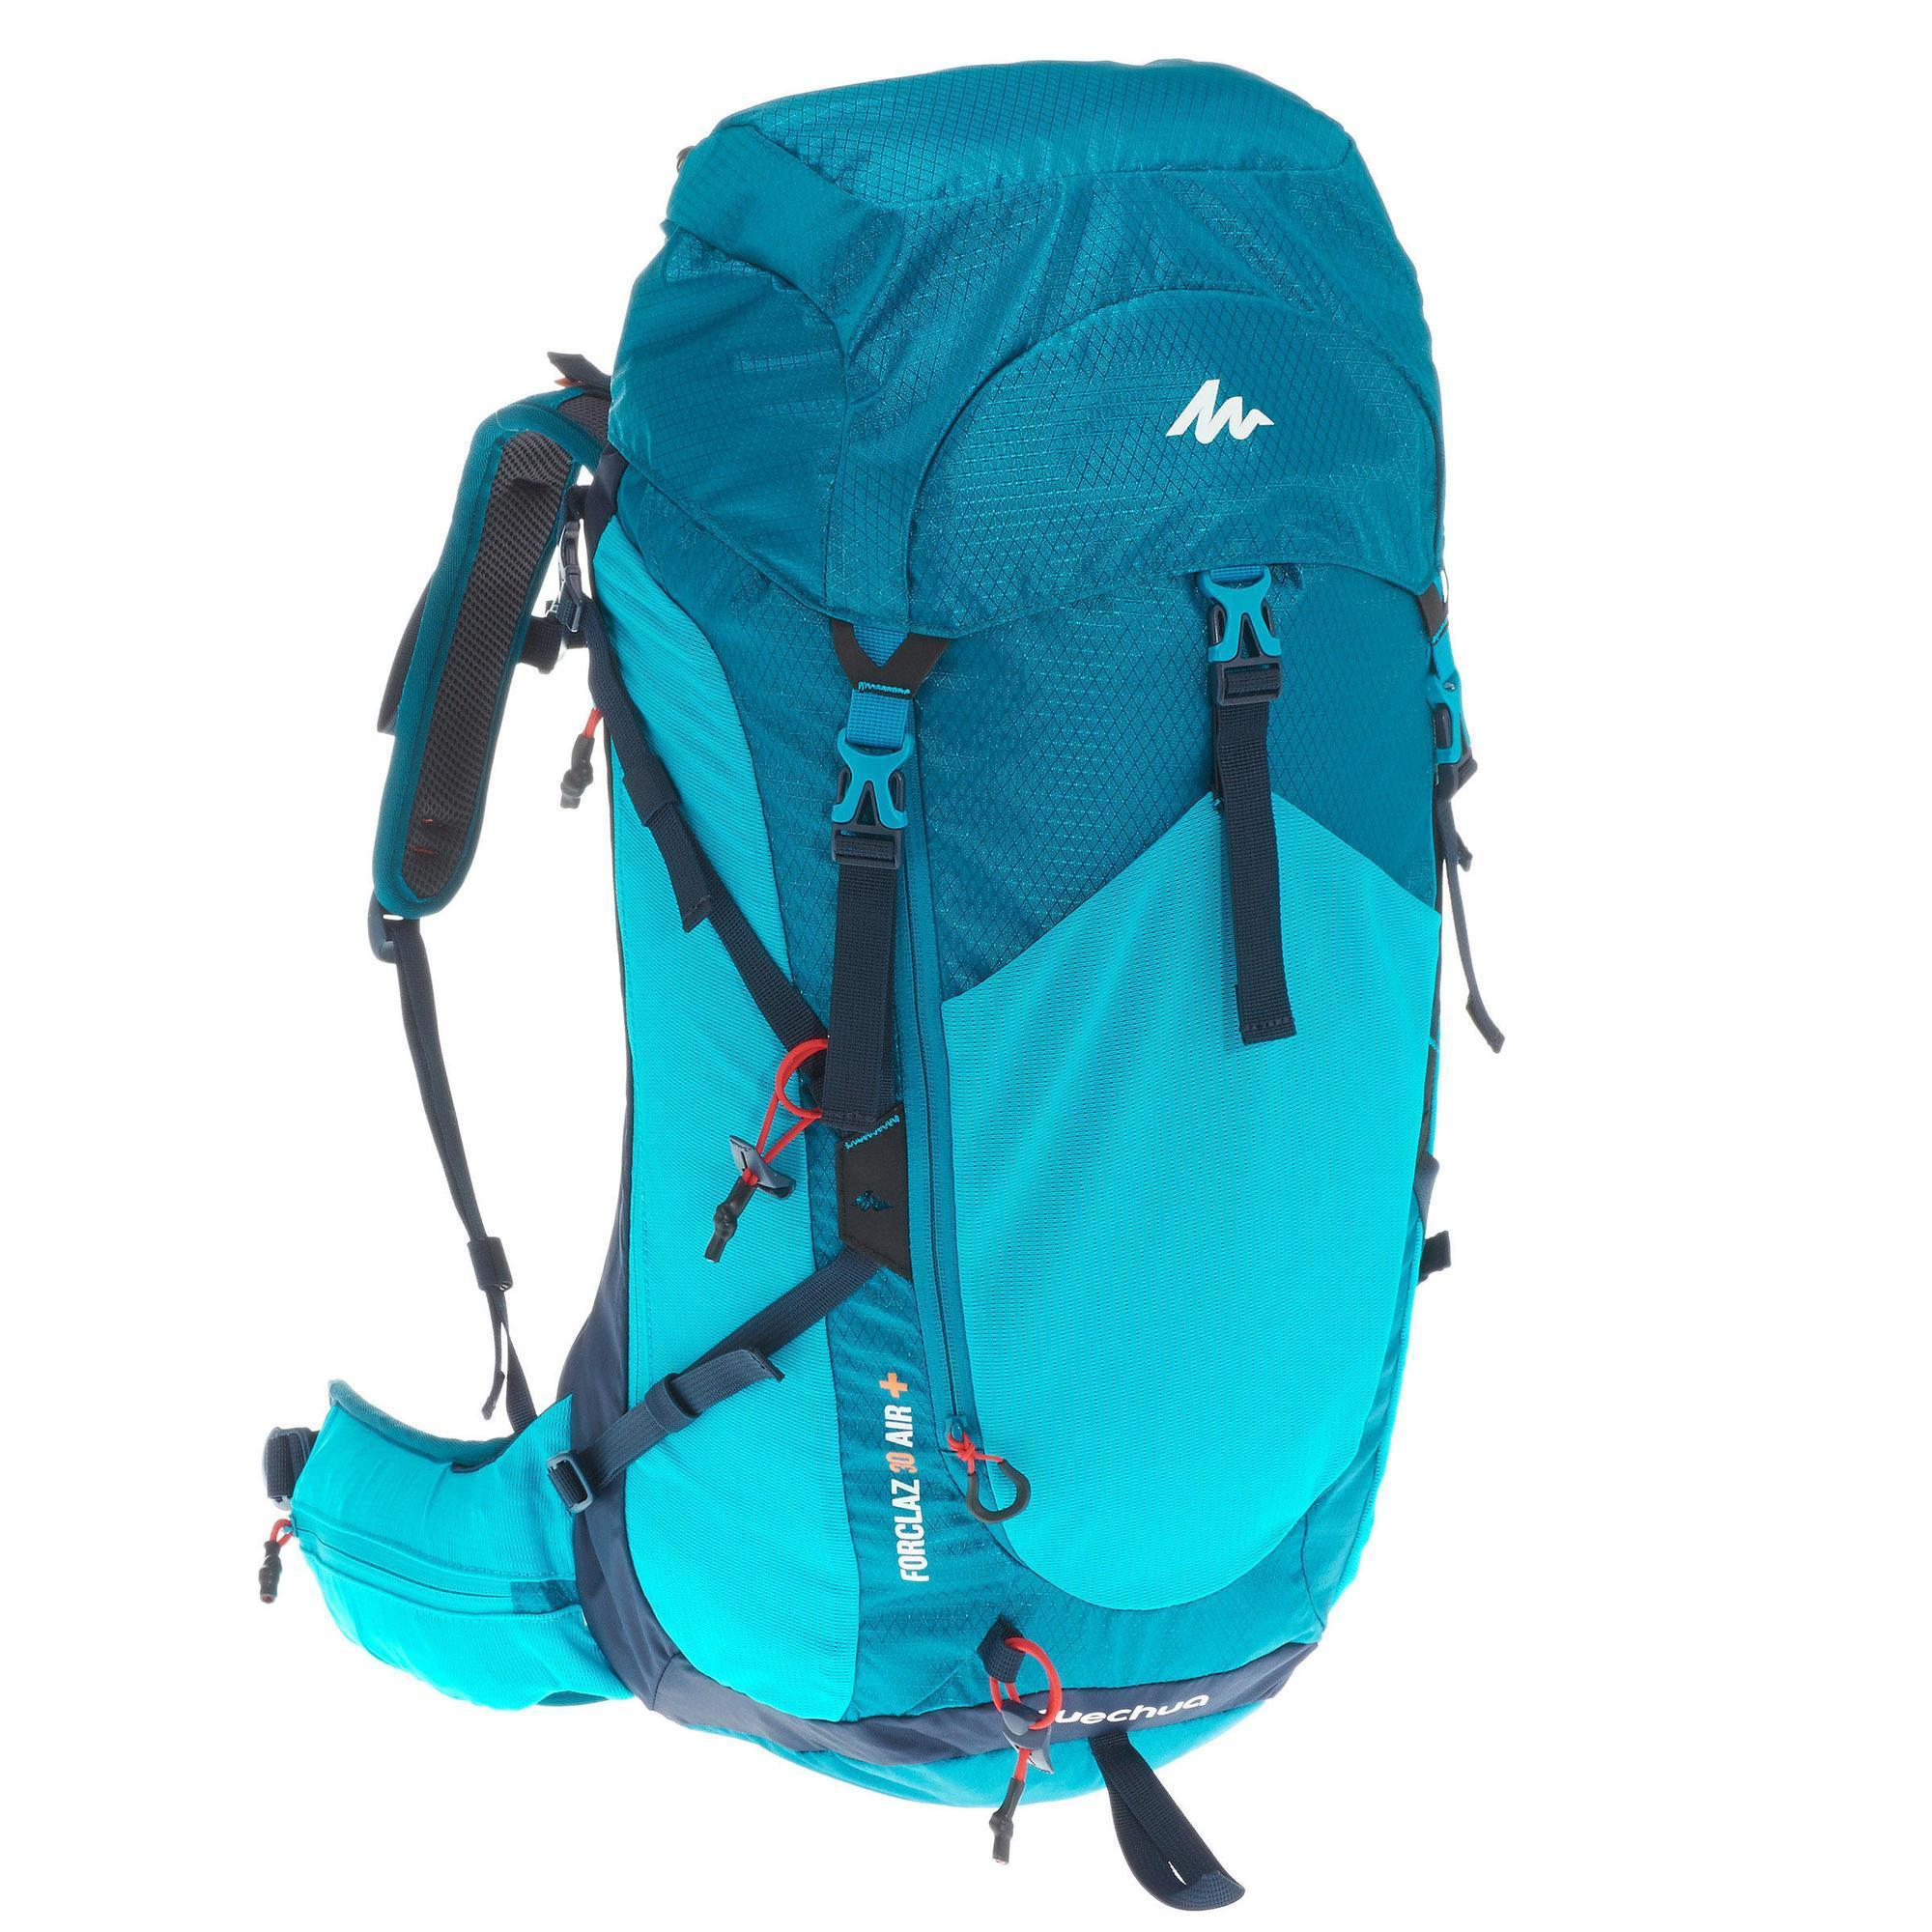 Mh500 30 L Hiking Backpack Blue Quechua